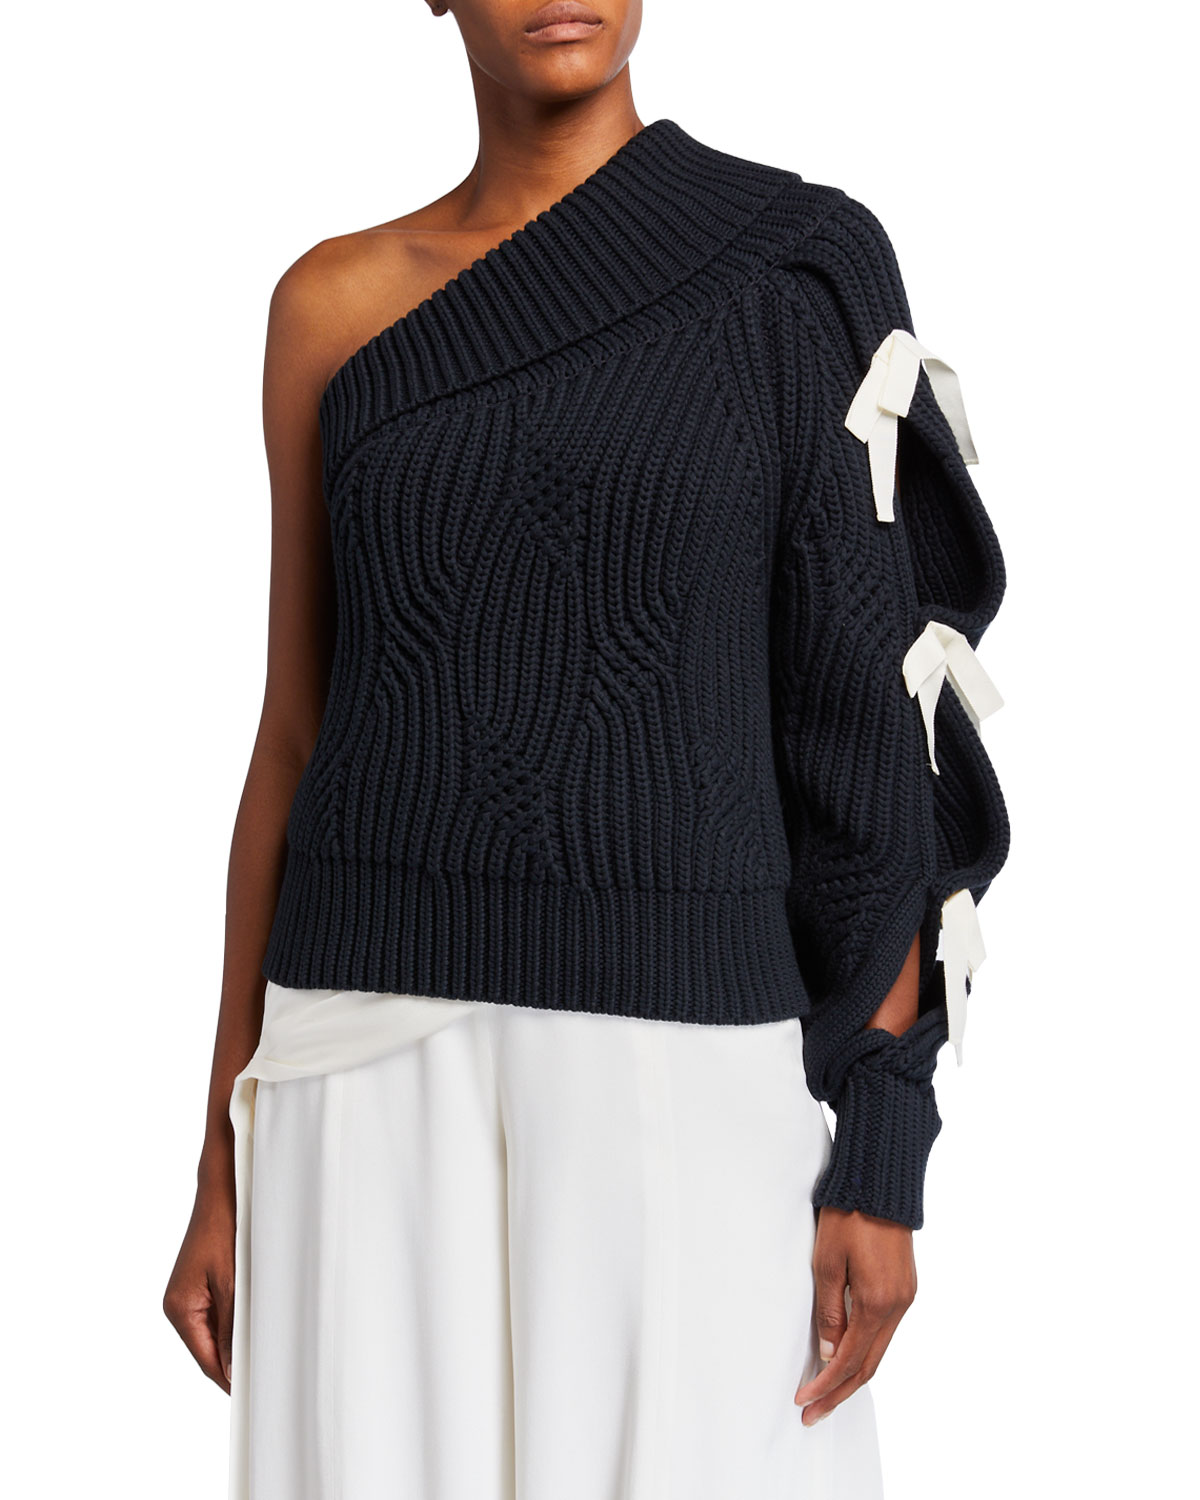 Hellessy Saville One-Shoulder Lace-Up Sweater